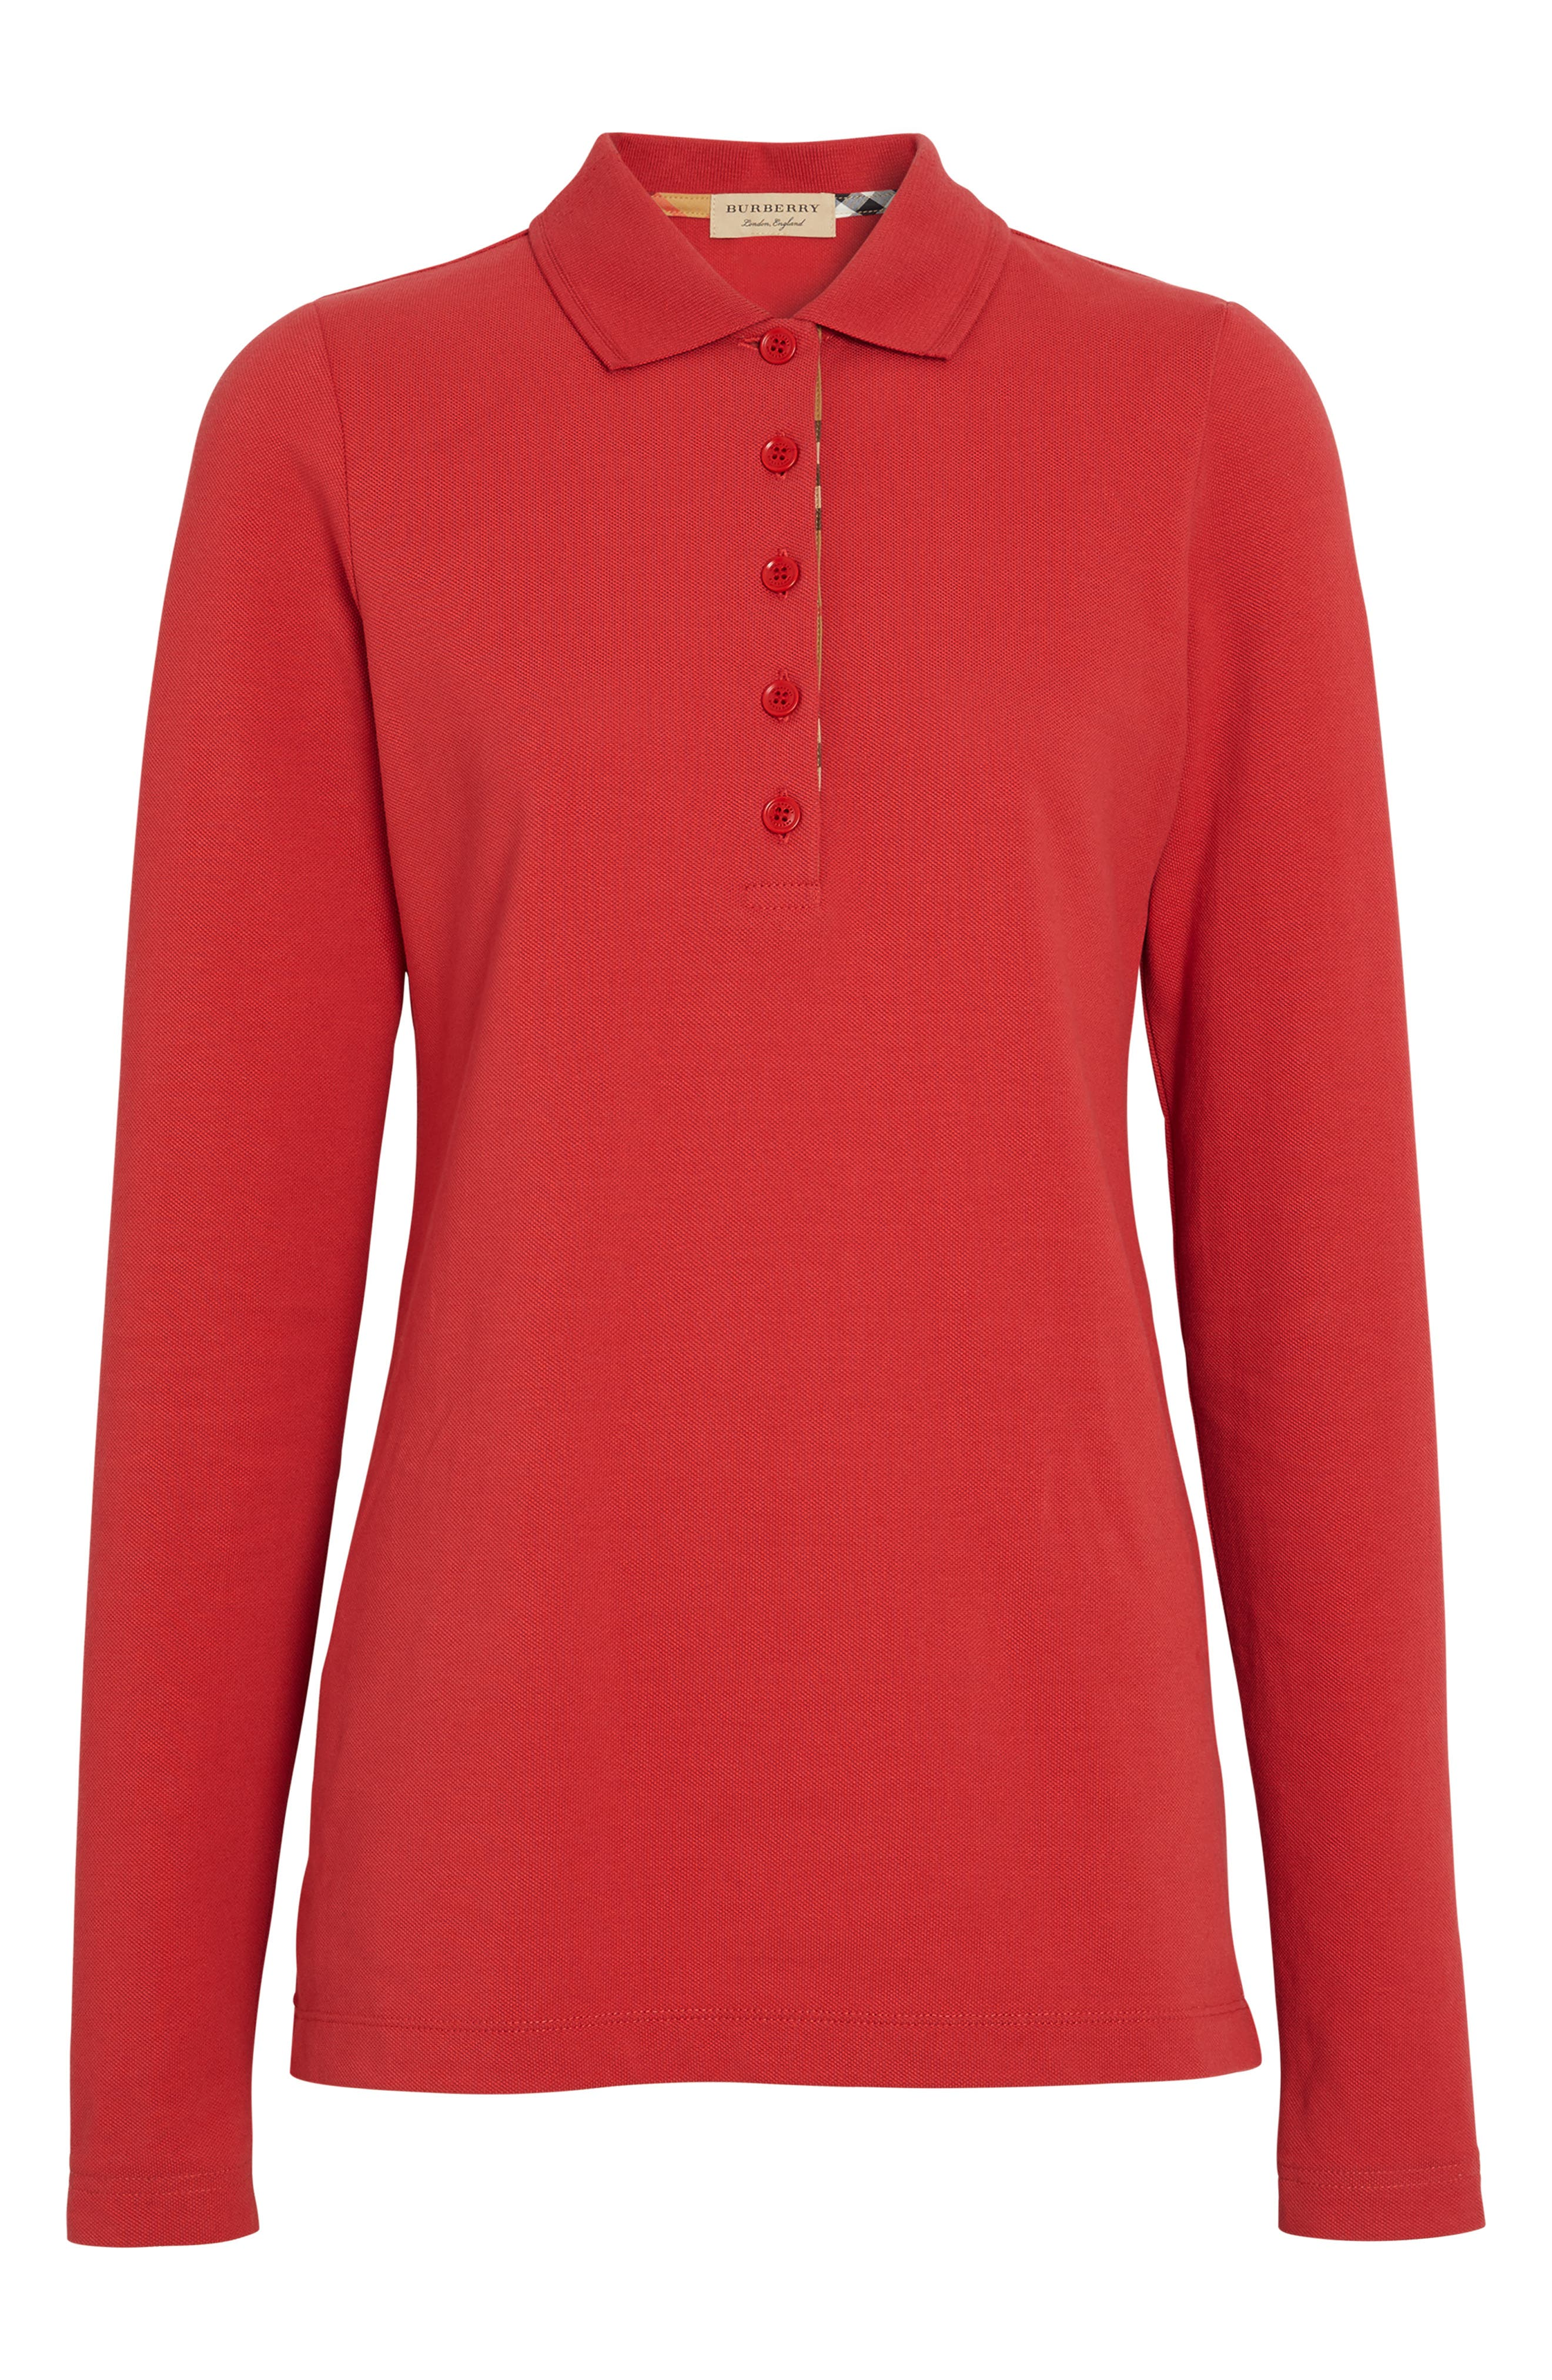 BURBERRY, Zulia Polo Shirt, Alternate thumbnail 4, color, BRIGHT RED